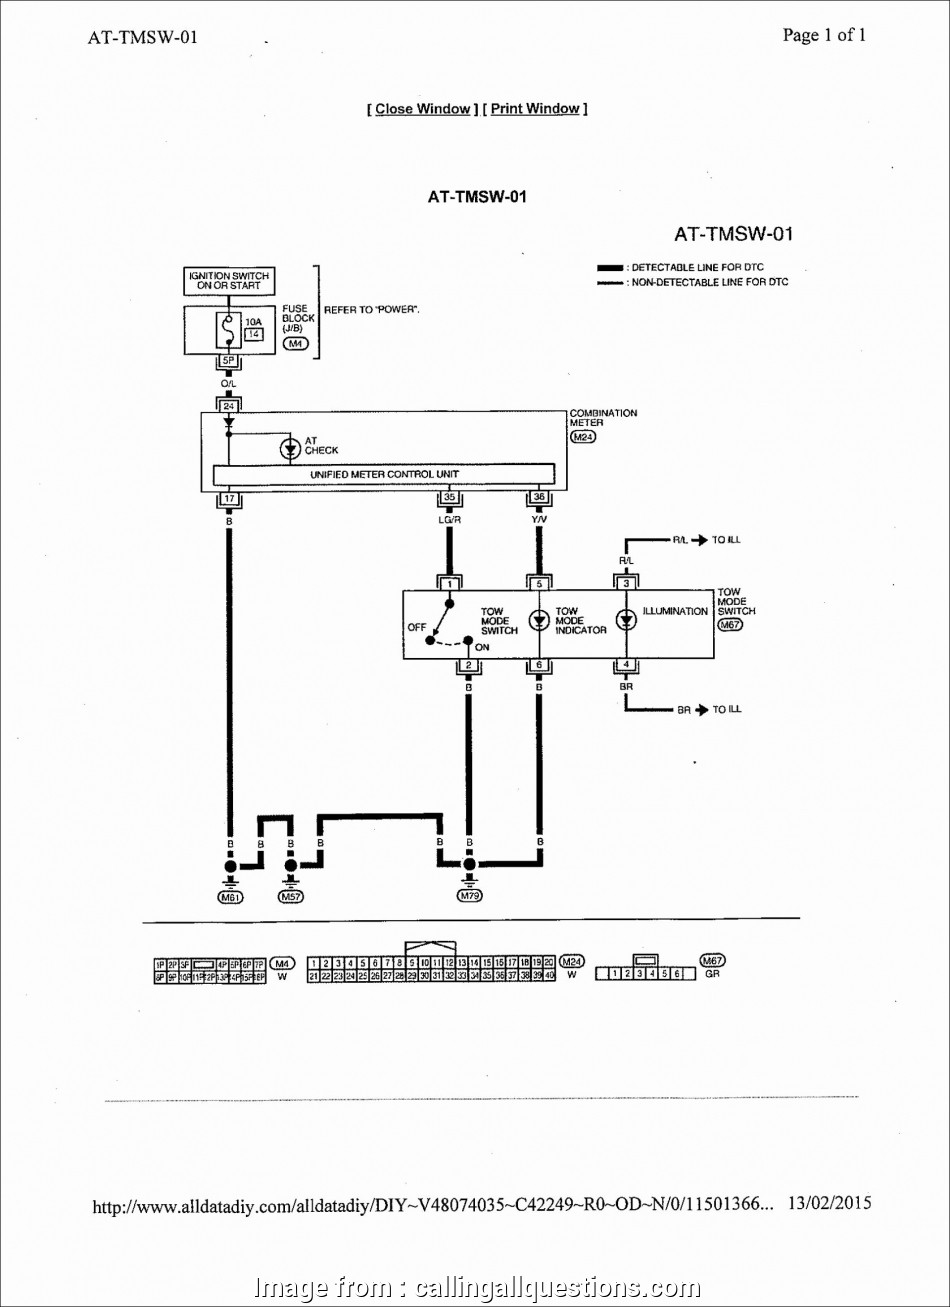 toggle switch to relay wiring ... Lighted Toggle Wiring Diagram Best Lighted Rocker Wiring Diagram 120v Example Toggle Lighted Toggle Switch Toggle Switch To Relay Wiring Perfect ... Lighted Toggle Wiring Diagram Best Lighted Rocker Wiring Diagram 120V Example Toggle Lighted Toggle Switch Photos